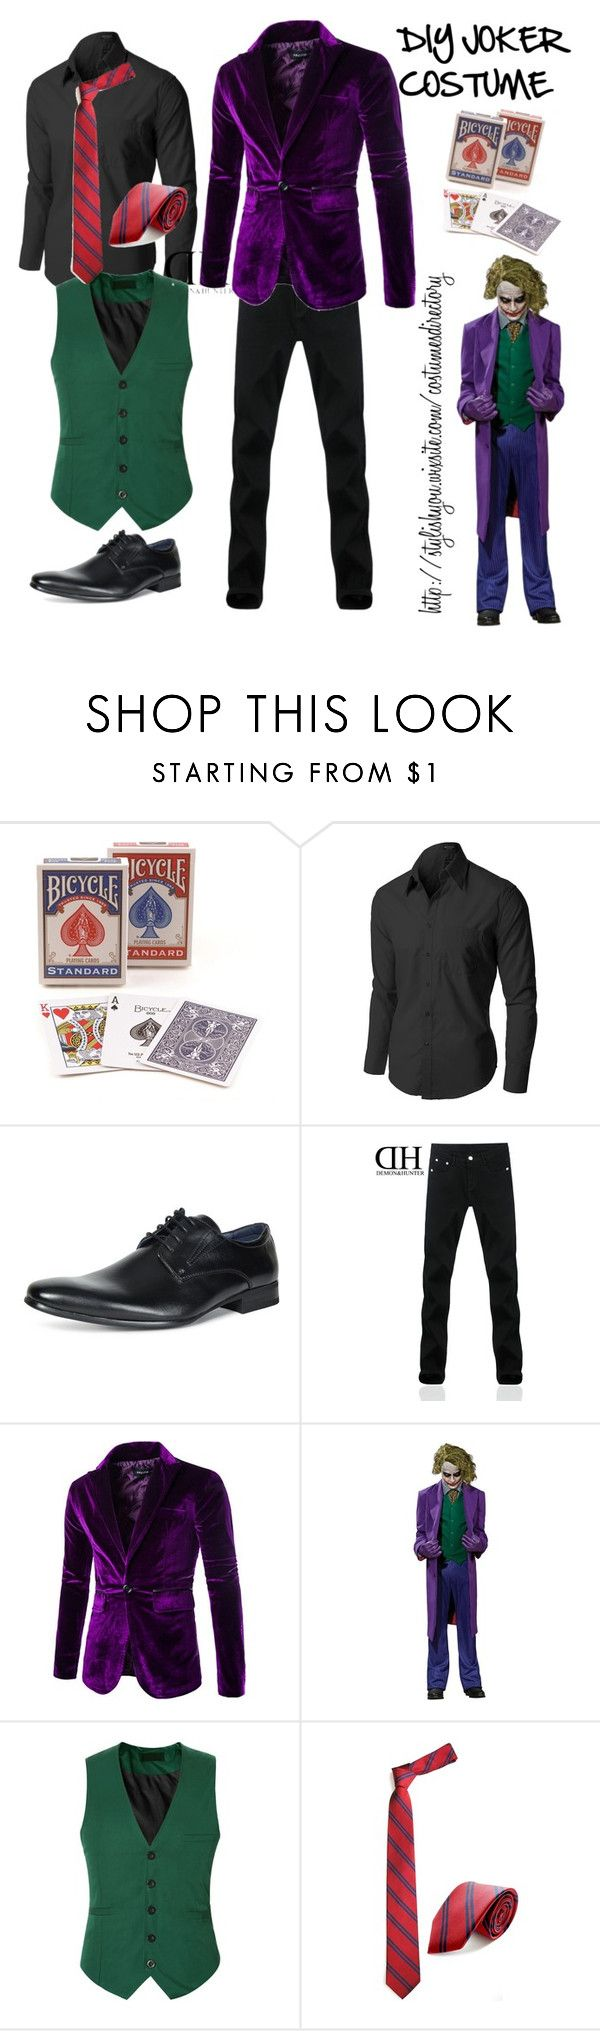 """DIY JOKER COSTUME FOR MEN"" by crestienne ❤ liked on Polyvore featuring men's fashion, menswear, DIY, outfit, batman, men and joker"